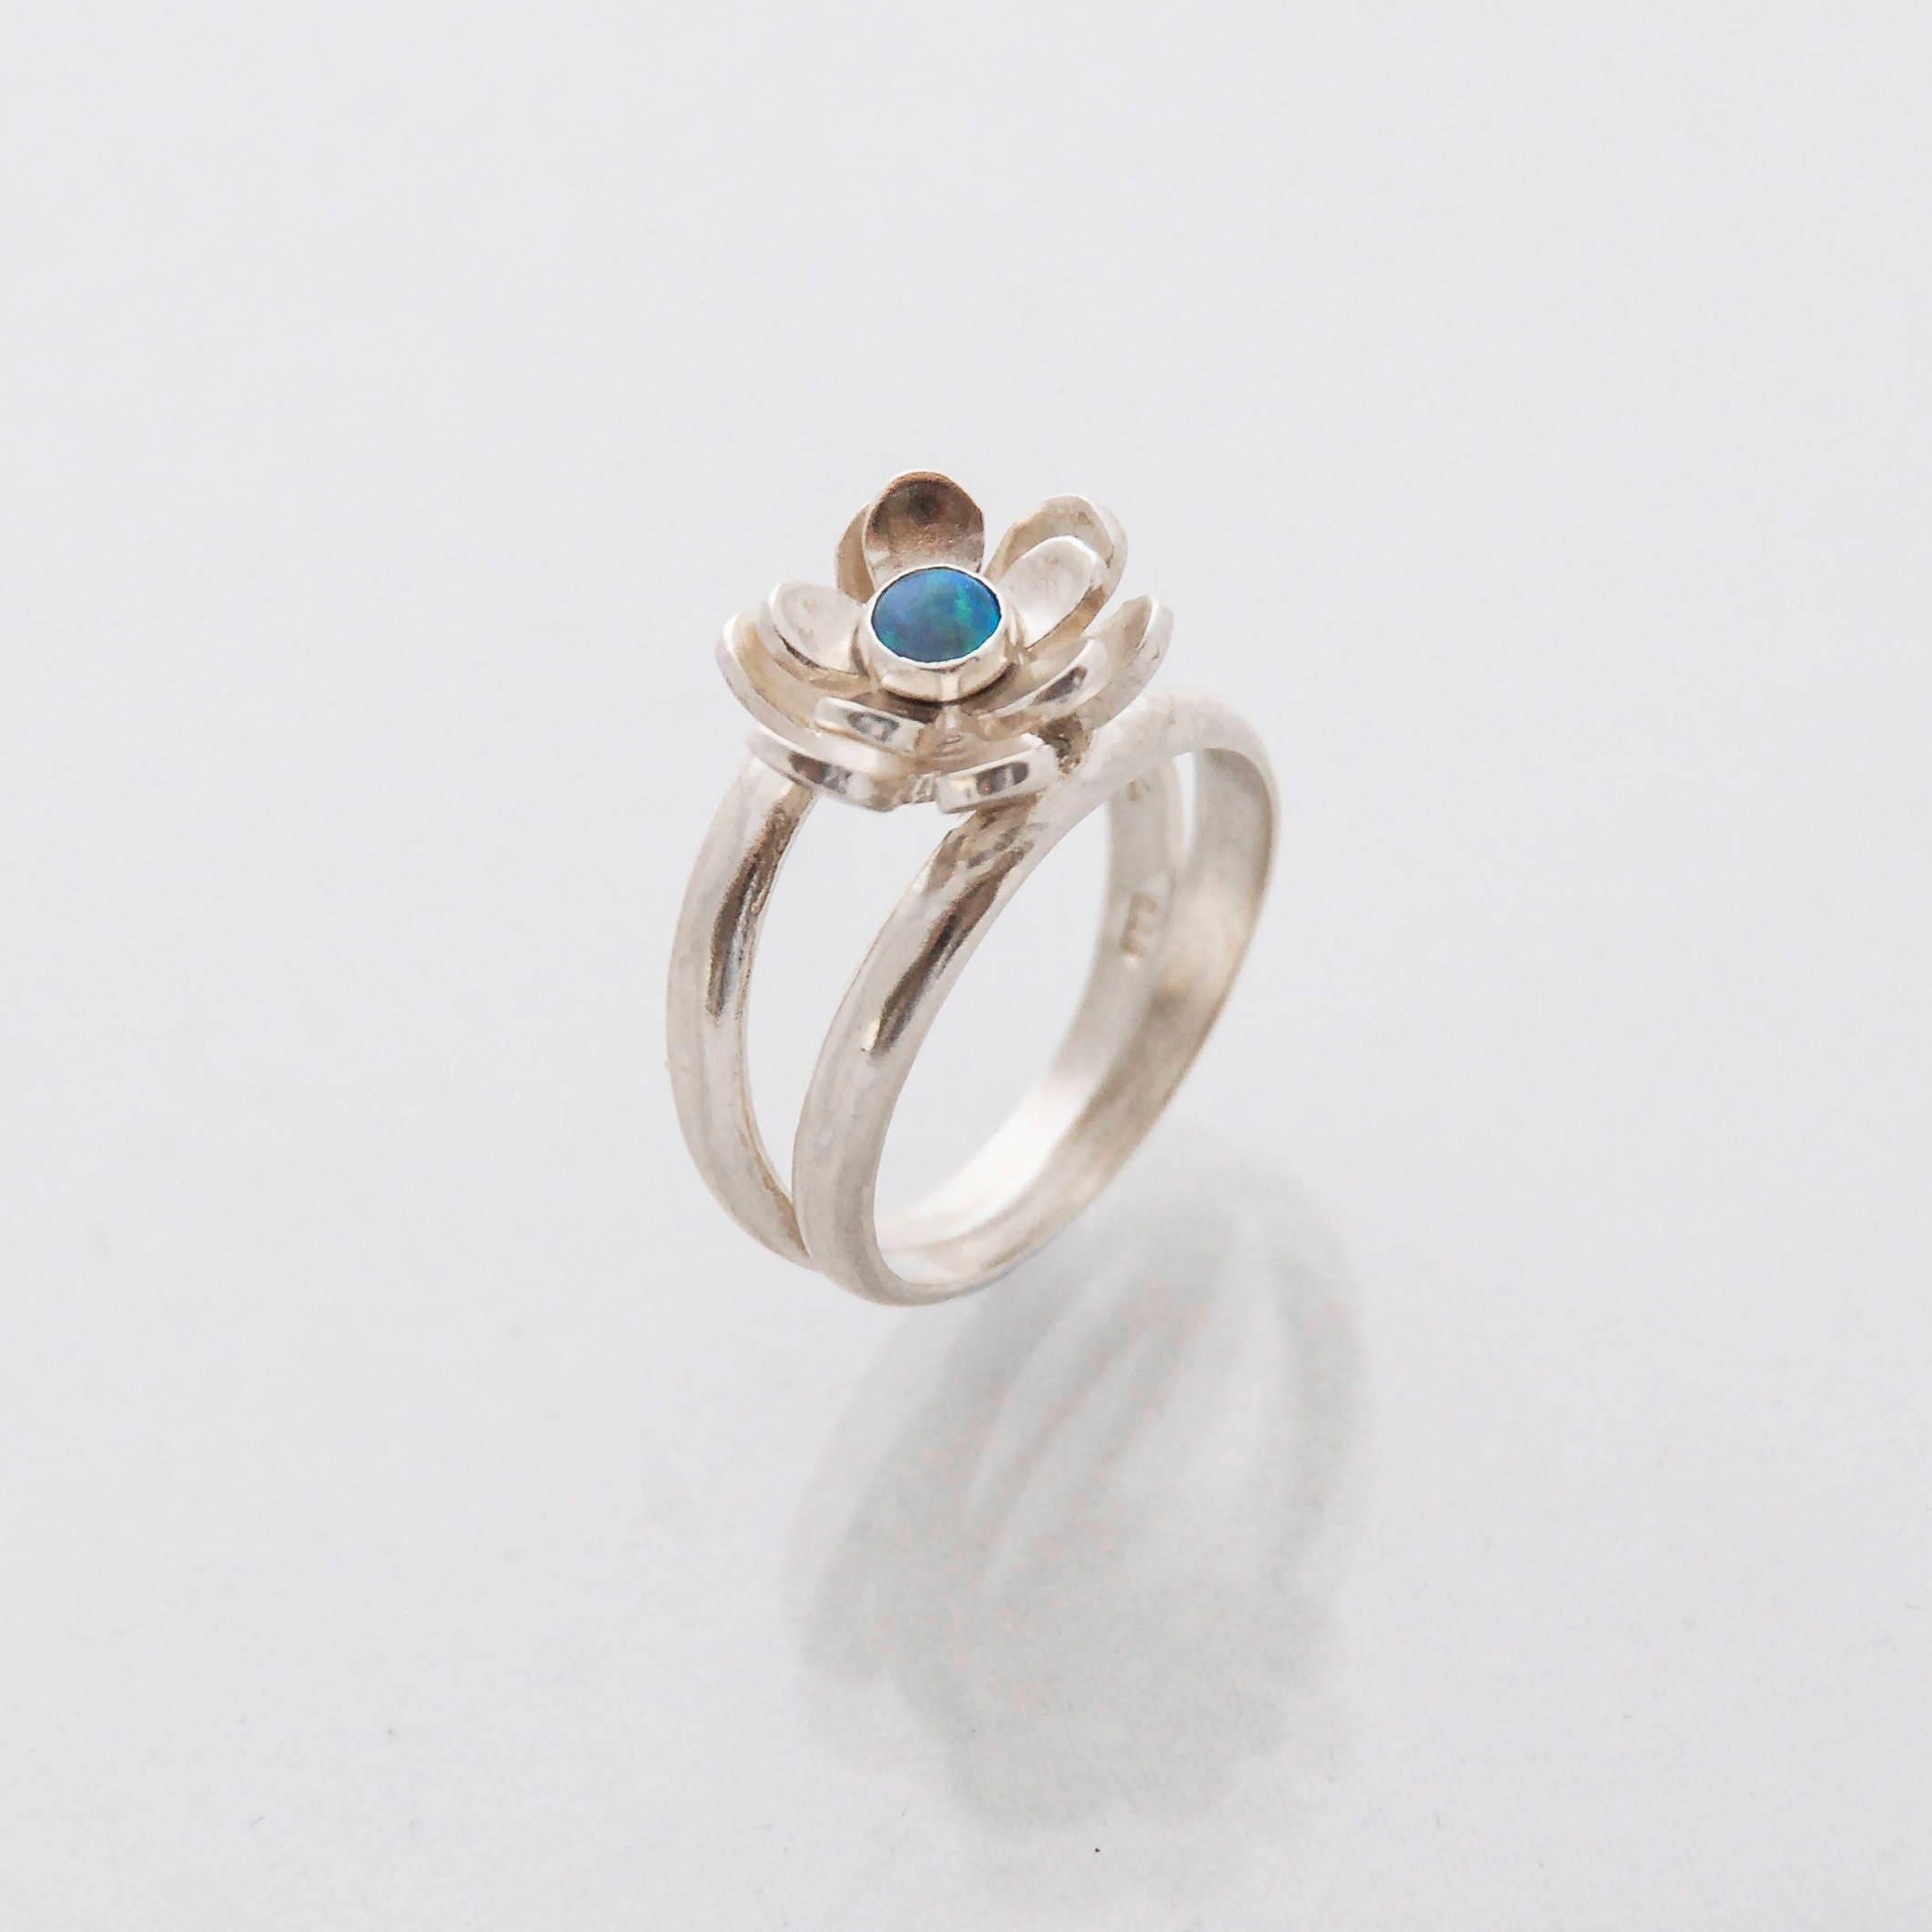 b152a174e5cb3 Lotus Flower Ring For Women, Sterling Silver Ring, Blue Stone Ring, Opalite  Ring, Handmade Ring, Casual Ring, Delicate Ring, Everyday Ring